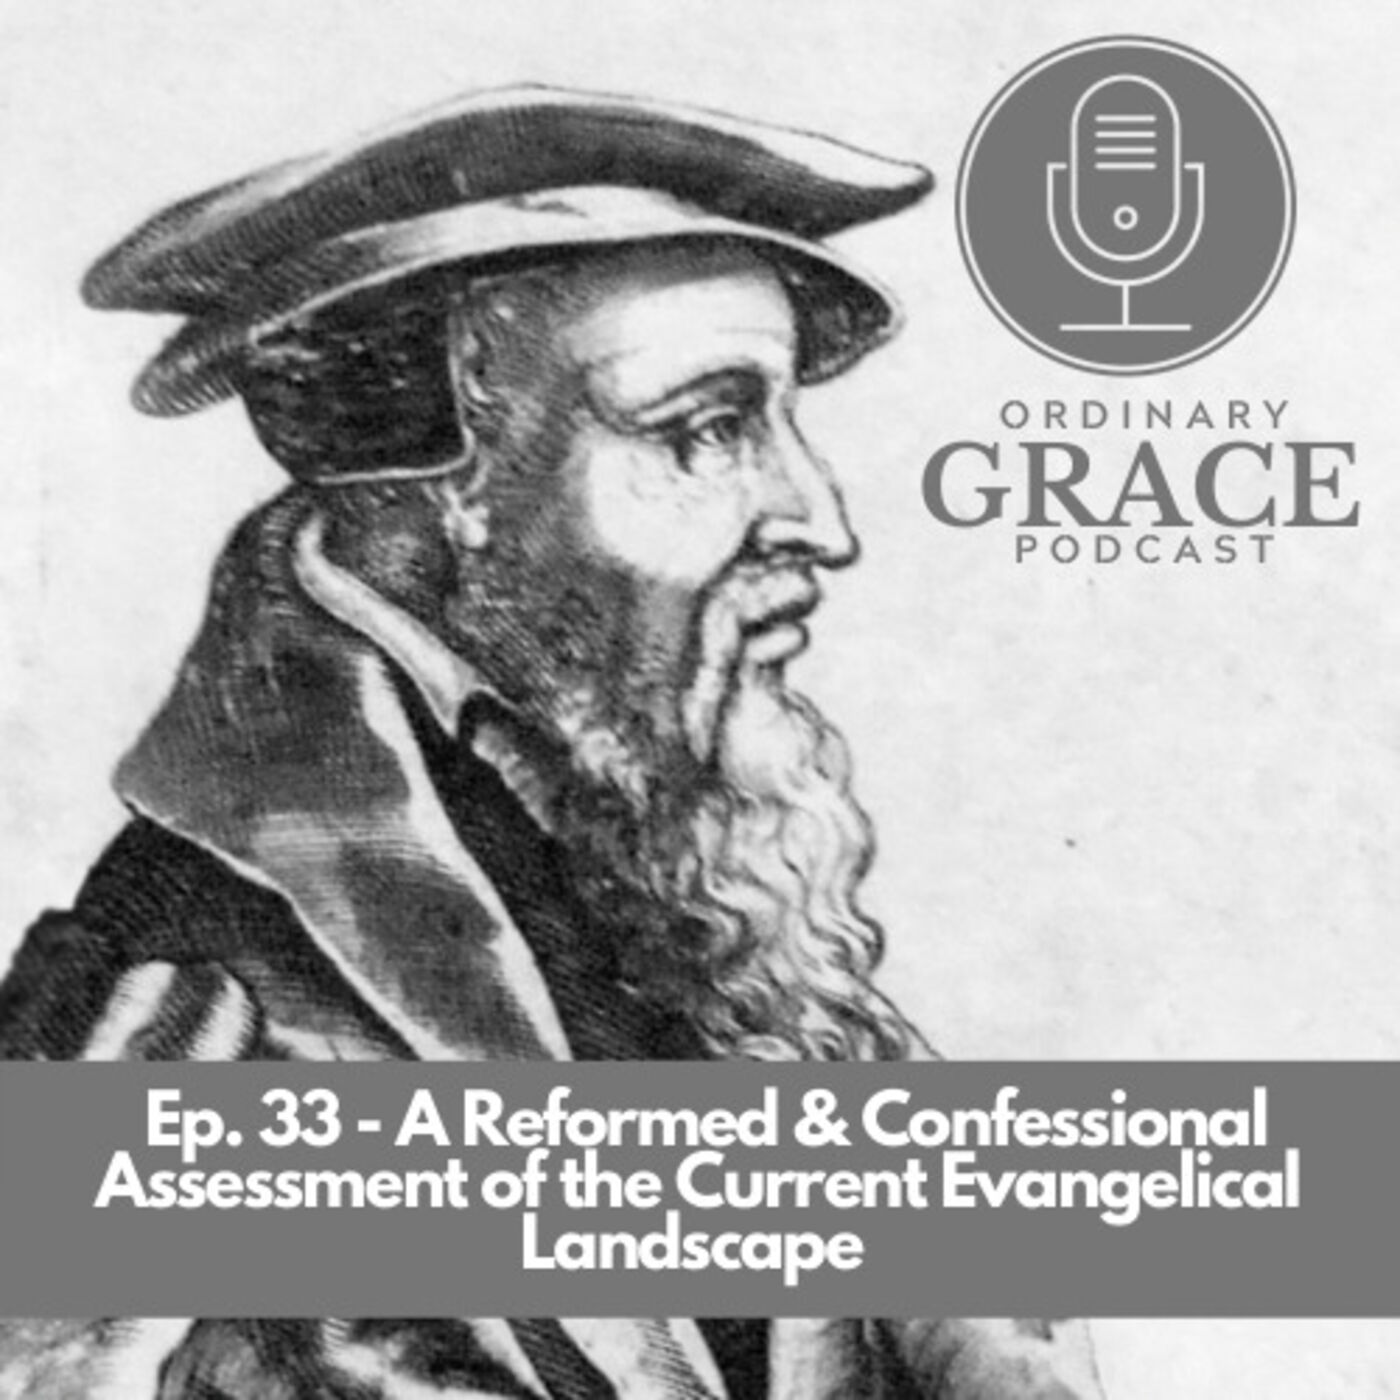 Episode 33 - Tom and Ryan discuss the current Evangelical Landscape from a Confessionally Reformed Perspective